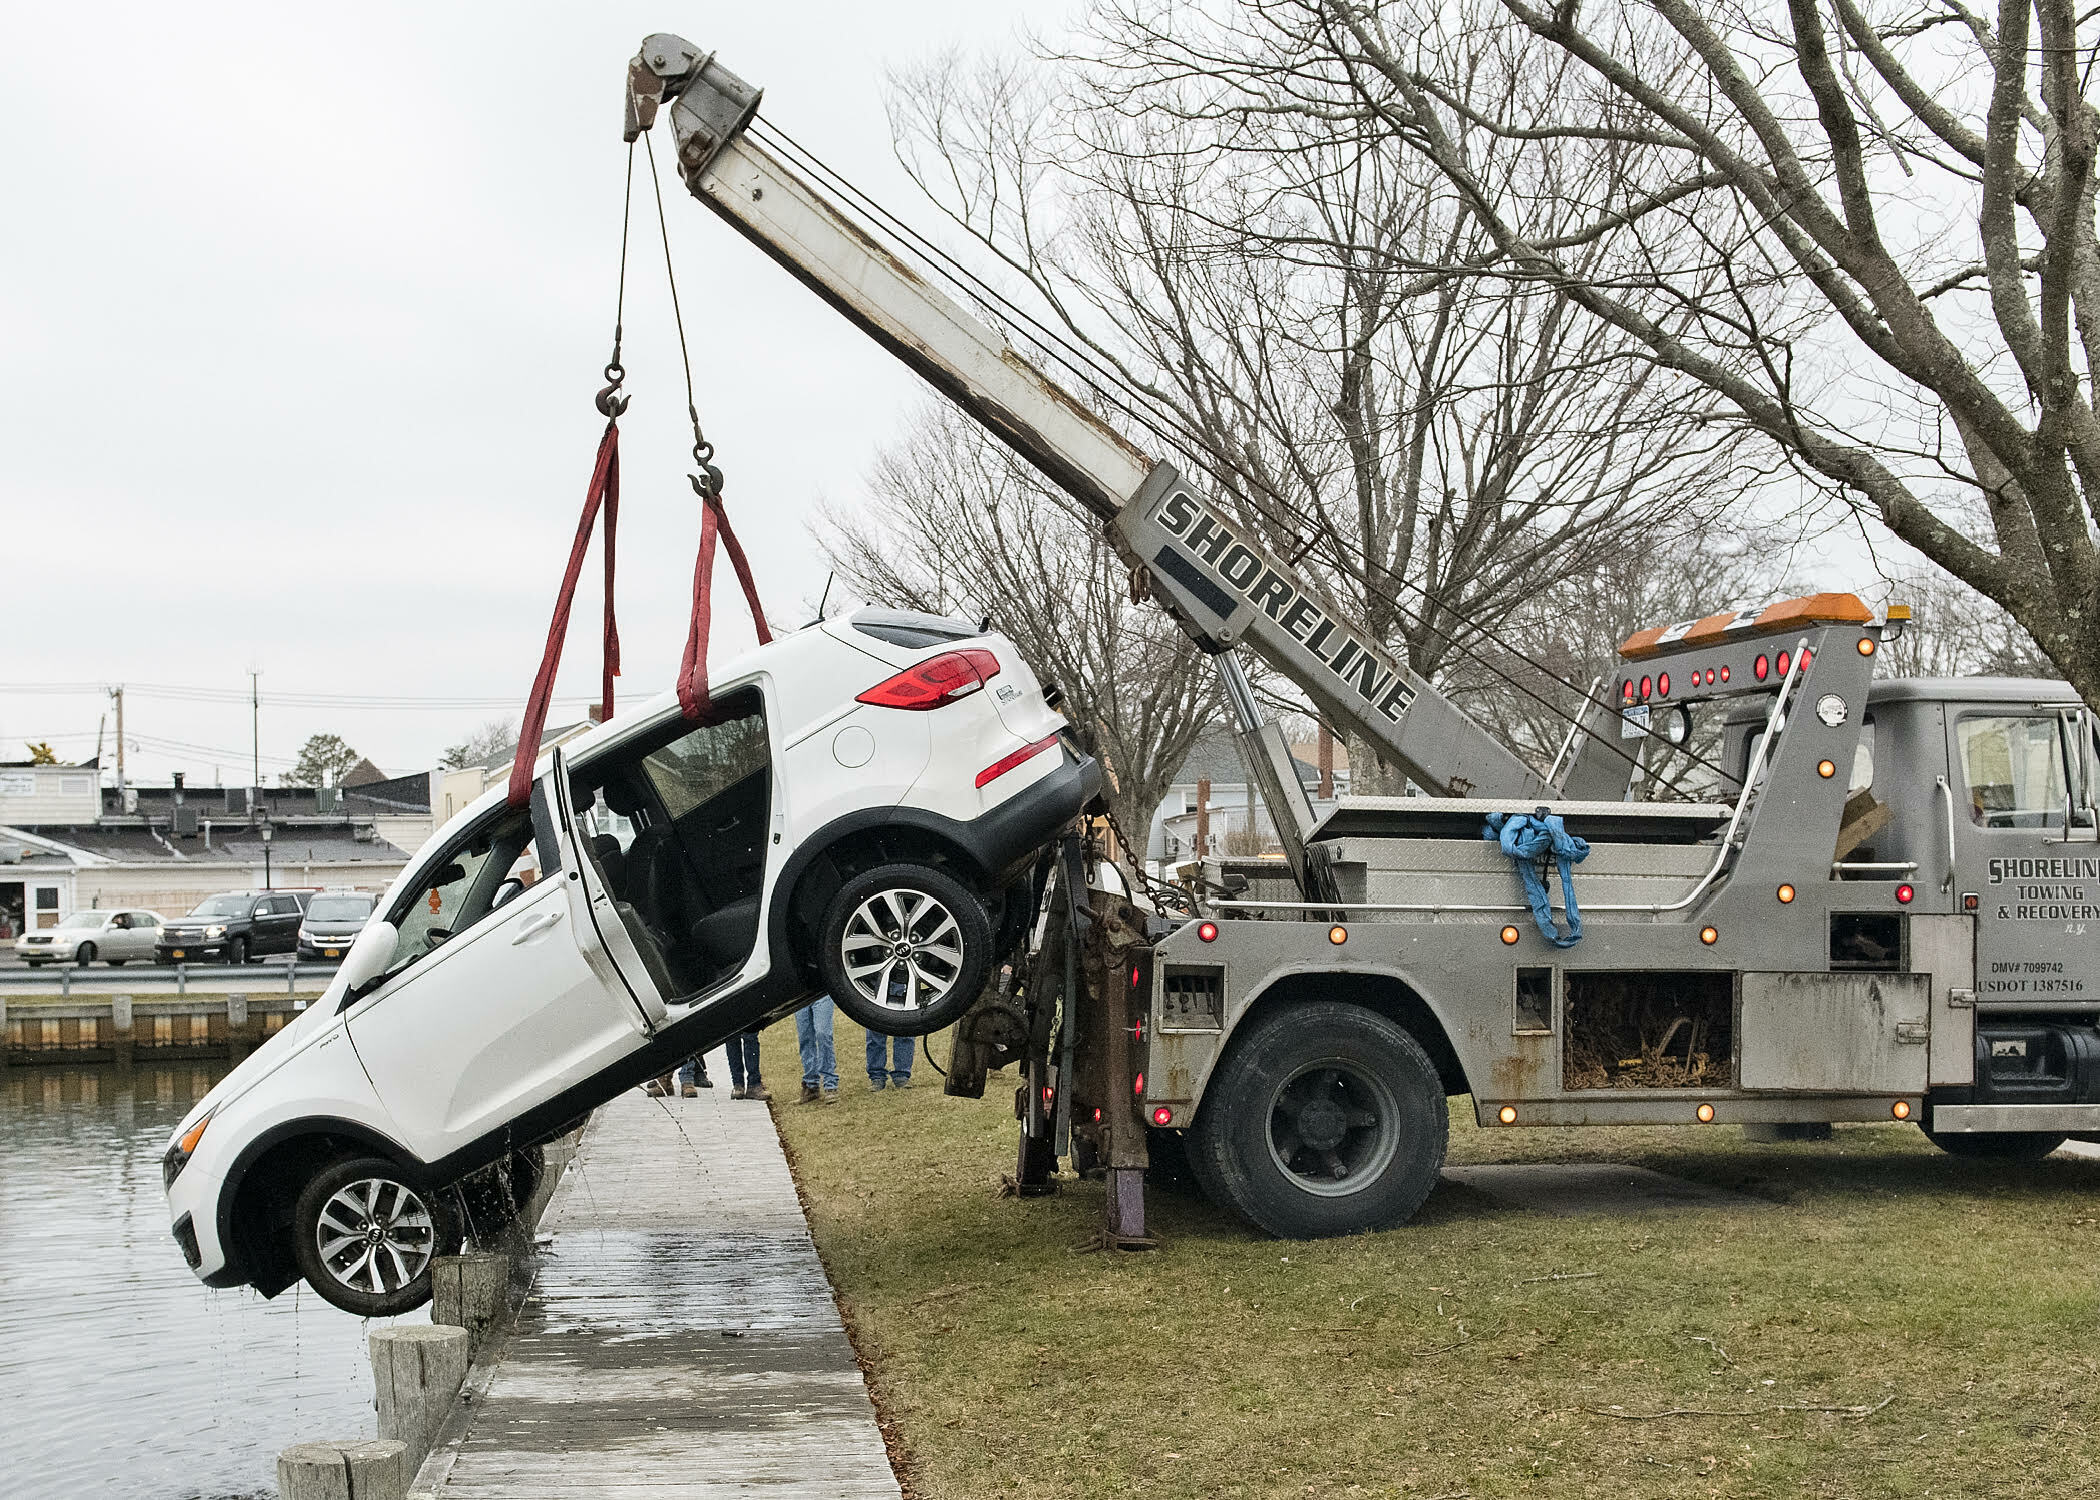 A truck from Shoreline Towing & Recovery was able to lift the vehicle onto shore.